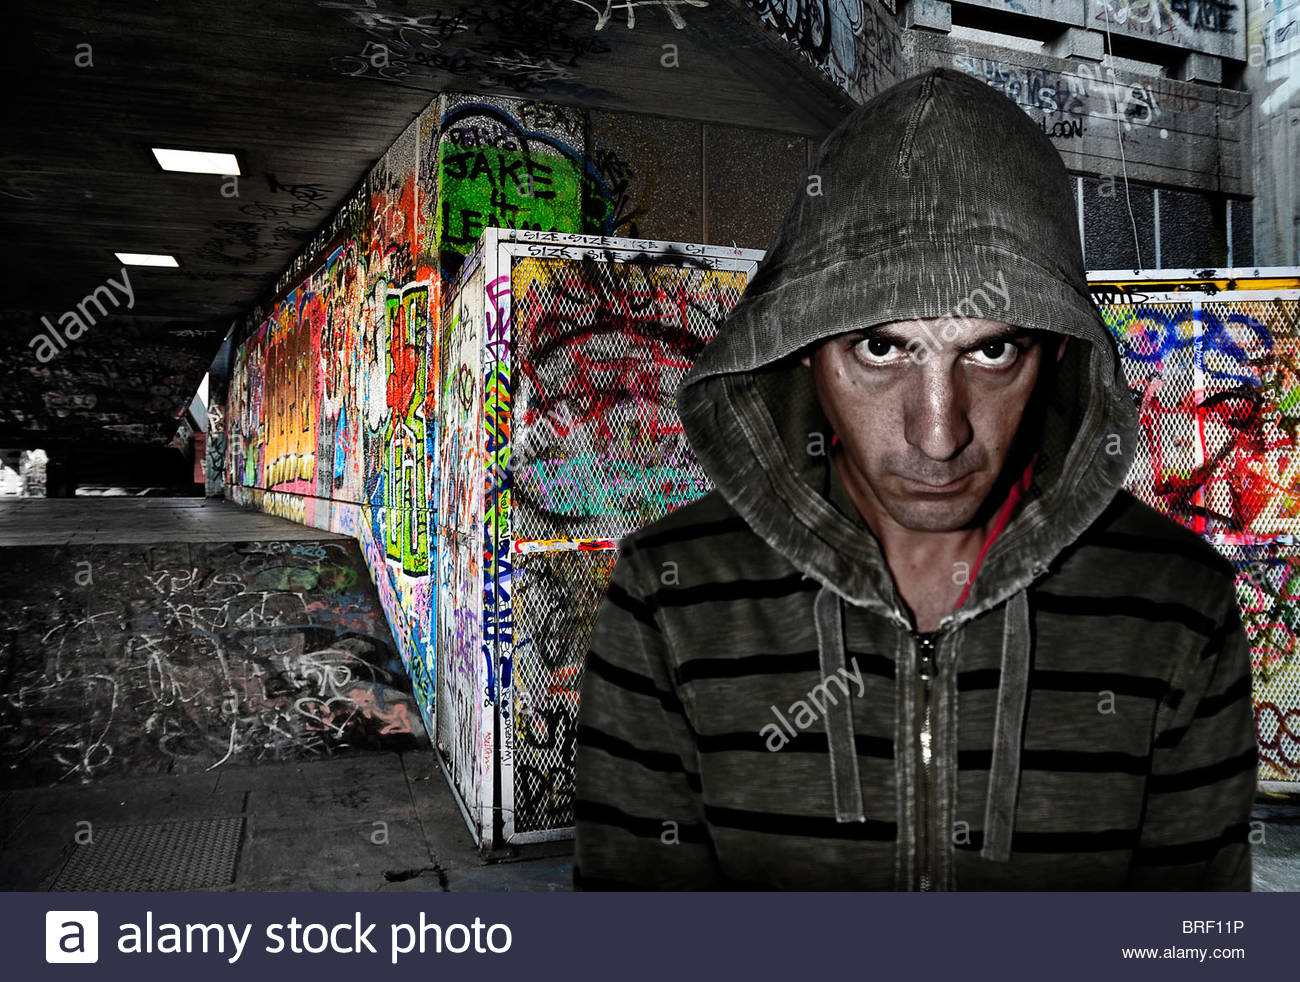 graffiti artist - Stock Image